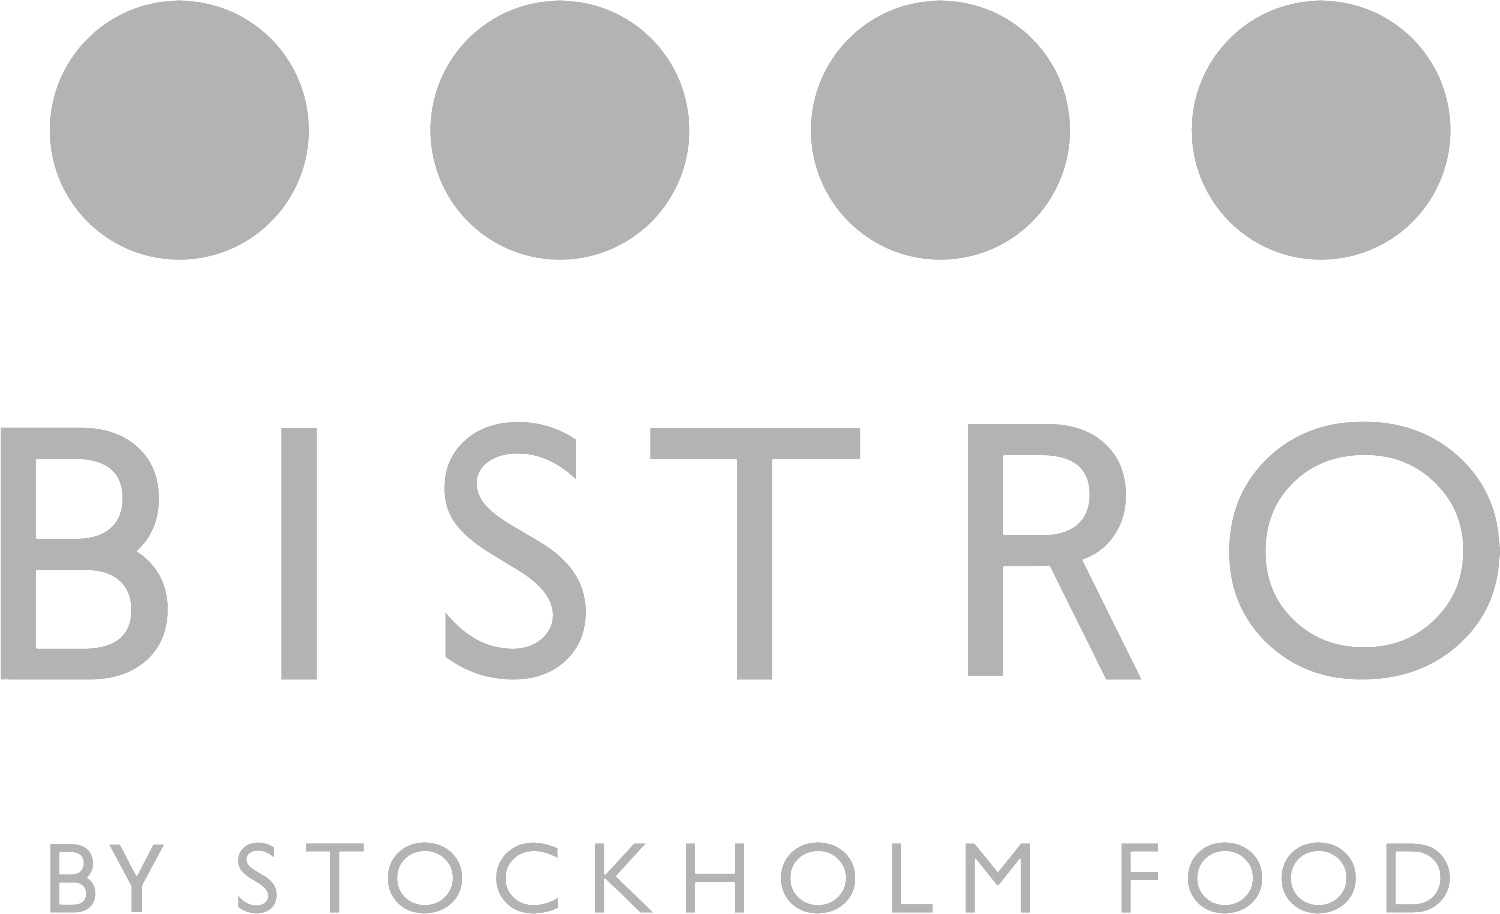 Bistro by Stockholm food